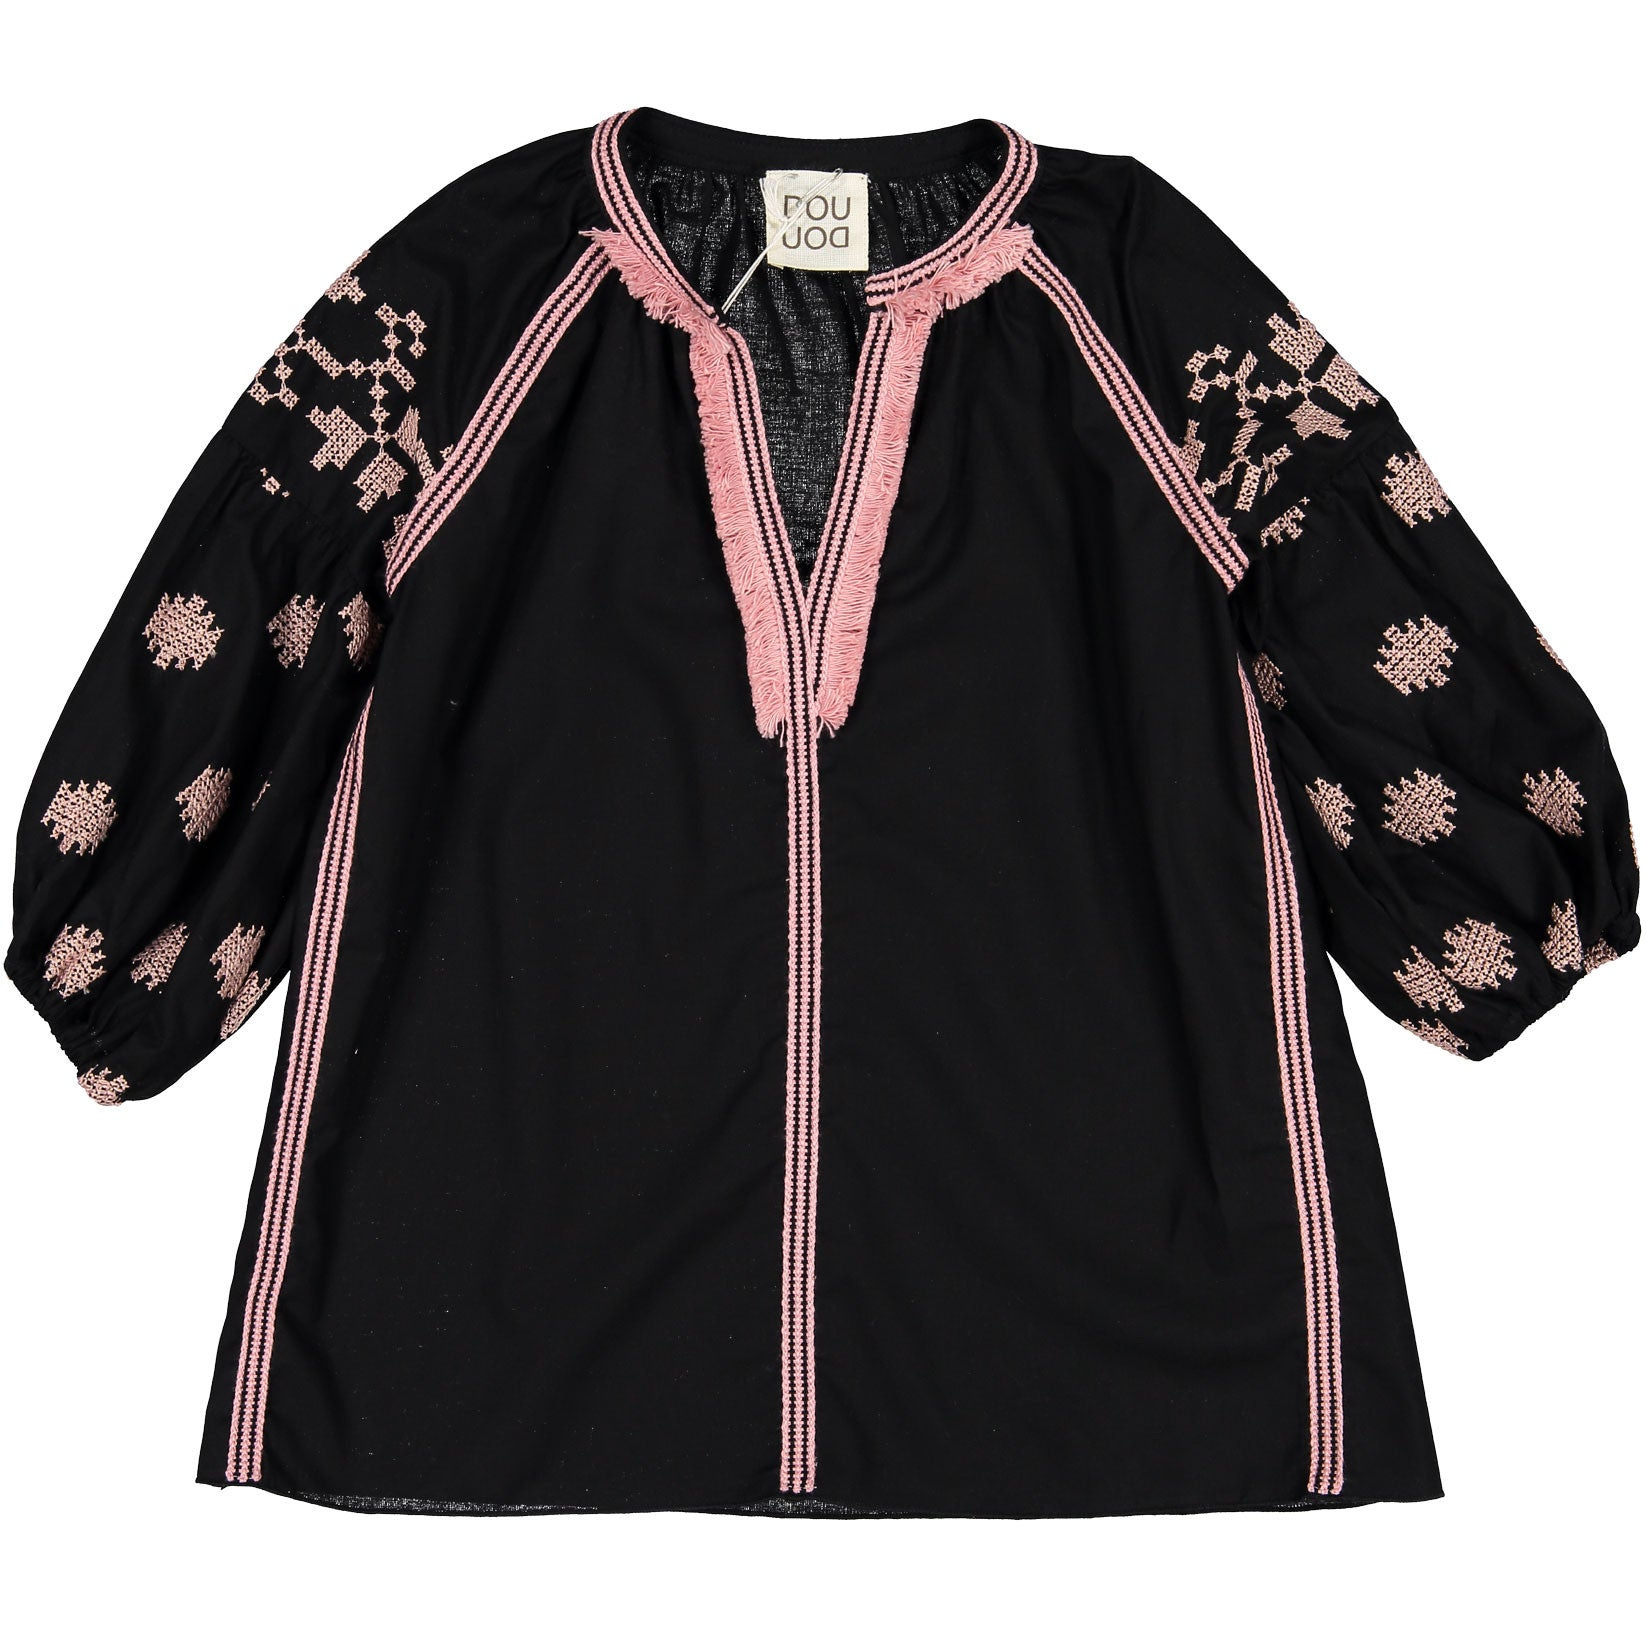 Doudou Navy Embroidered Blouse - Ladida